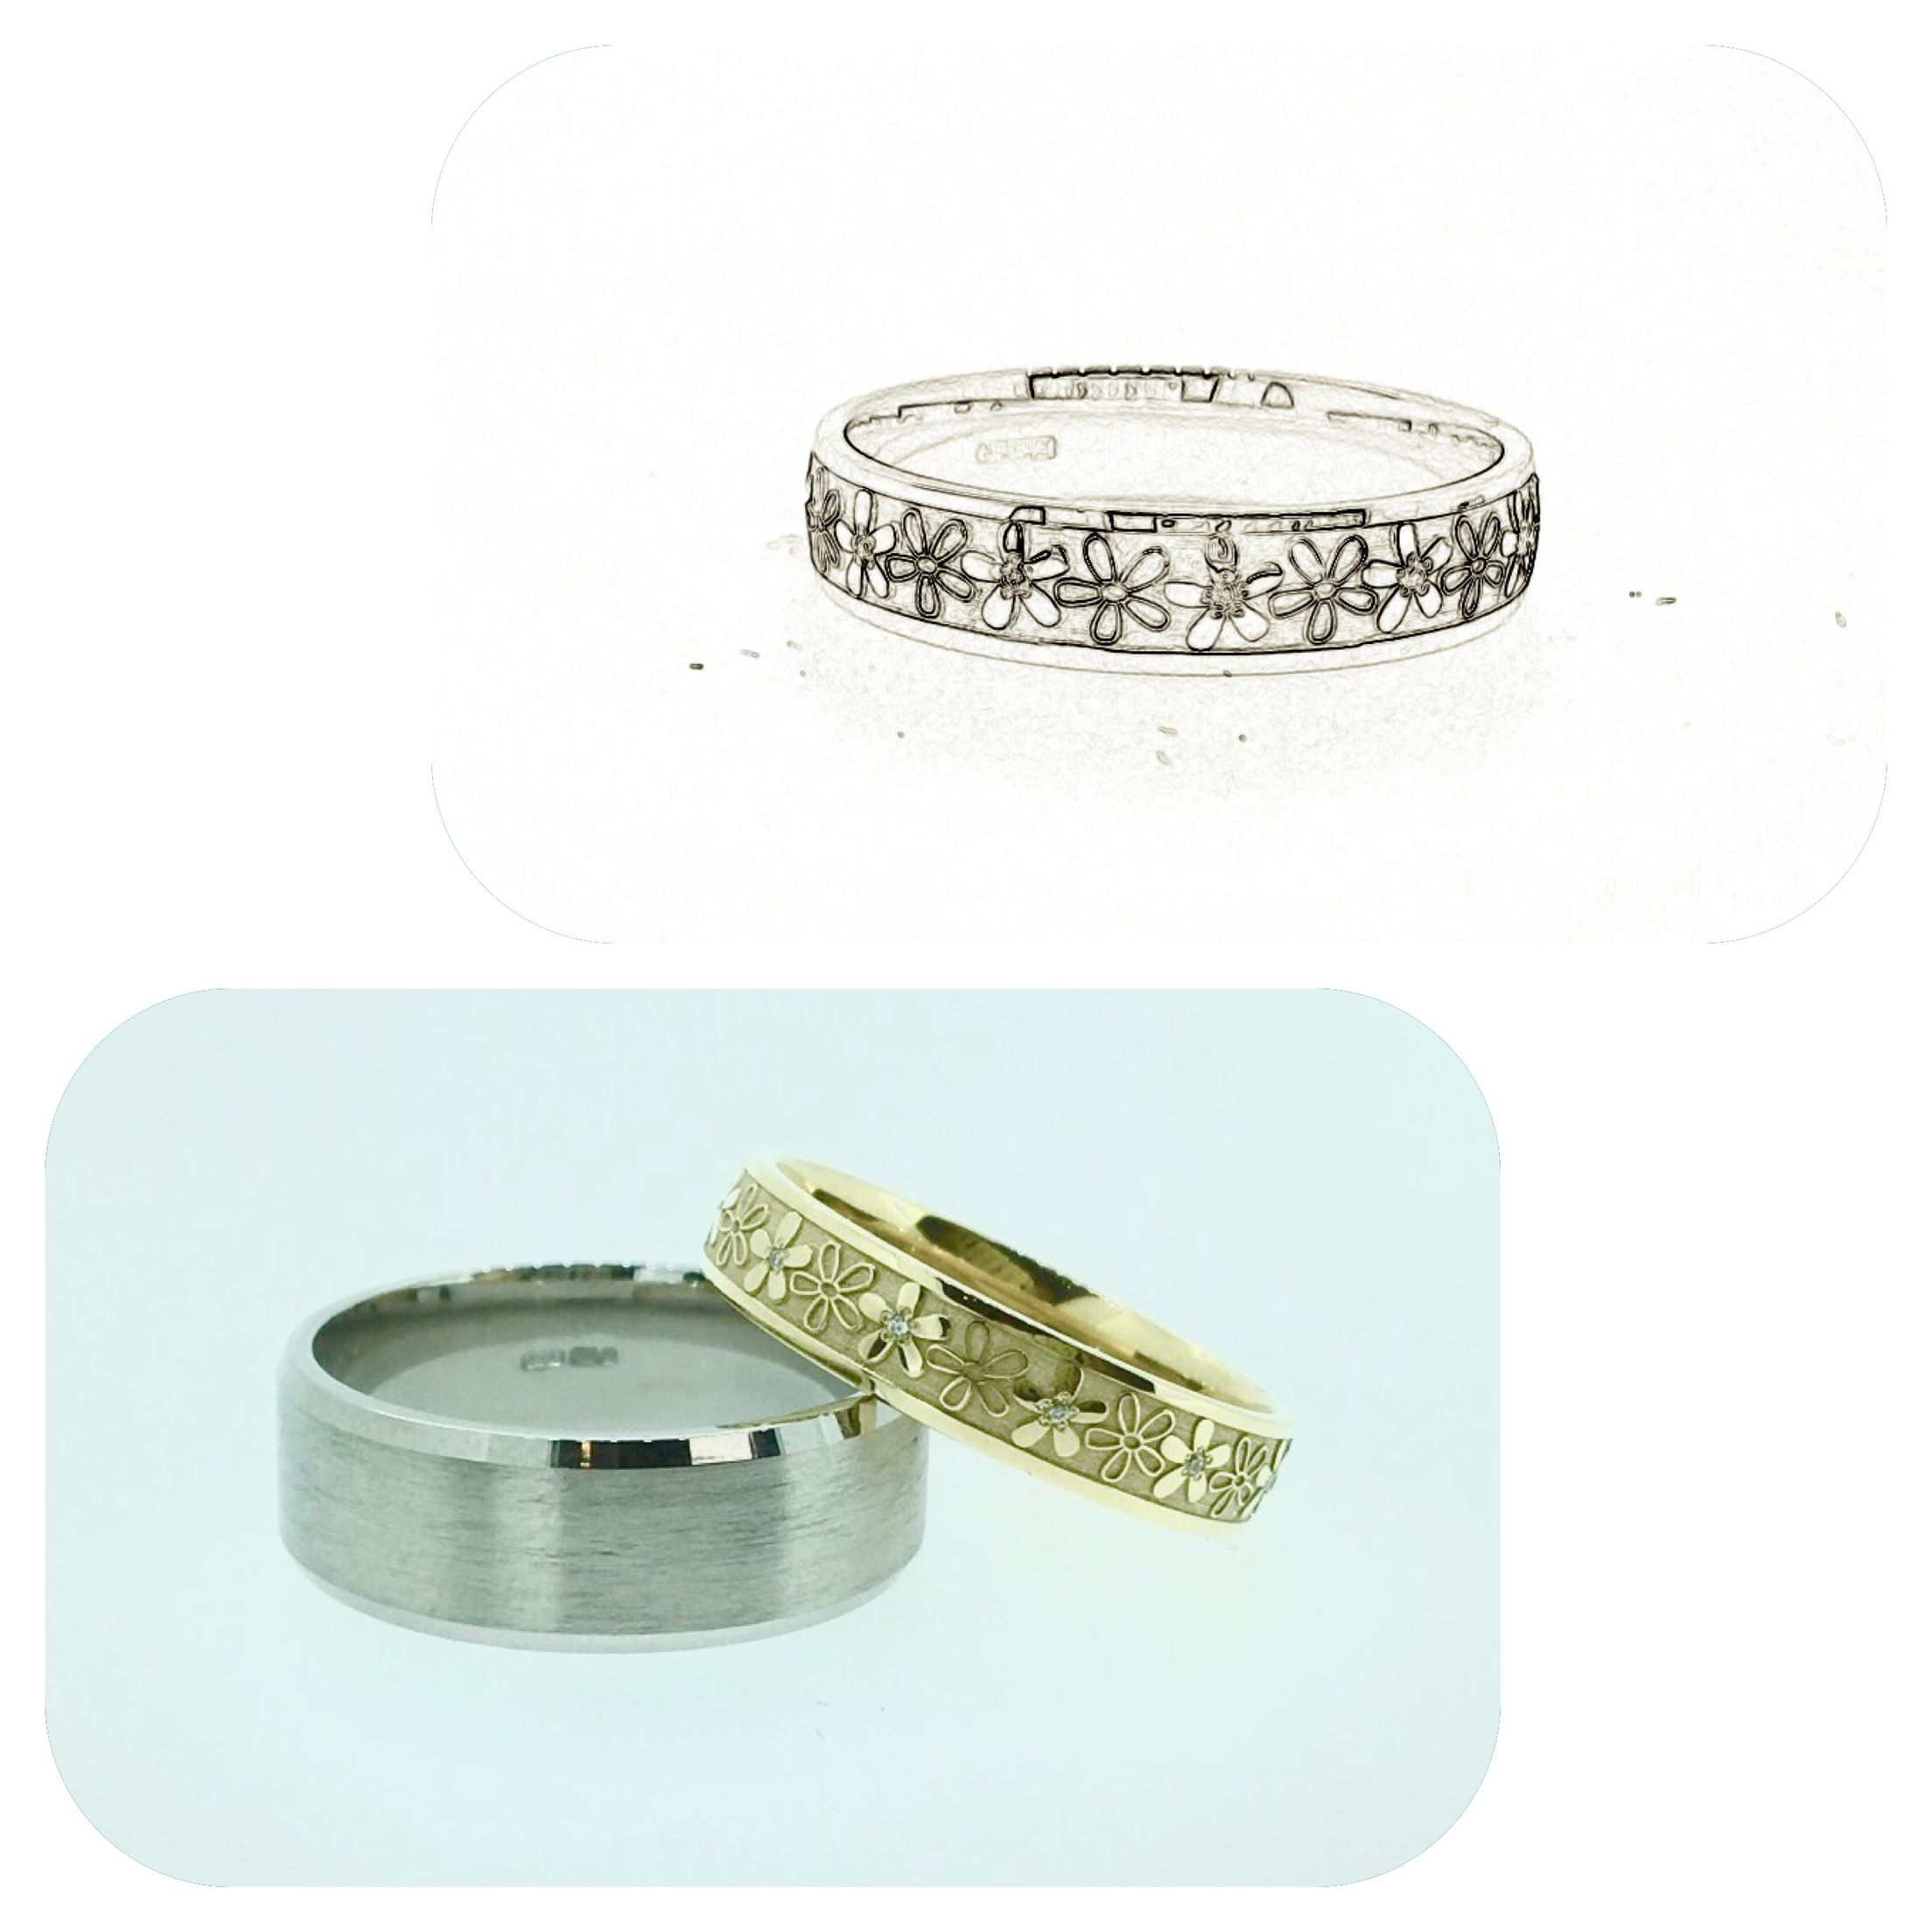 From concept to creation, flower inspired wedding ring